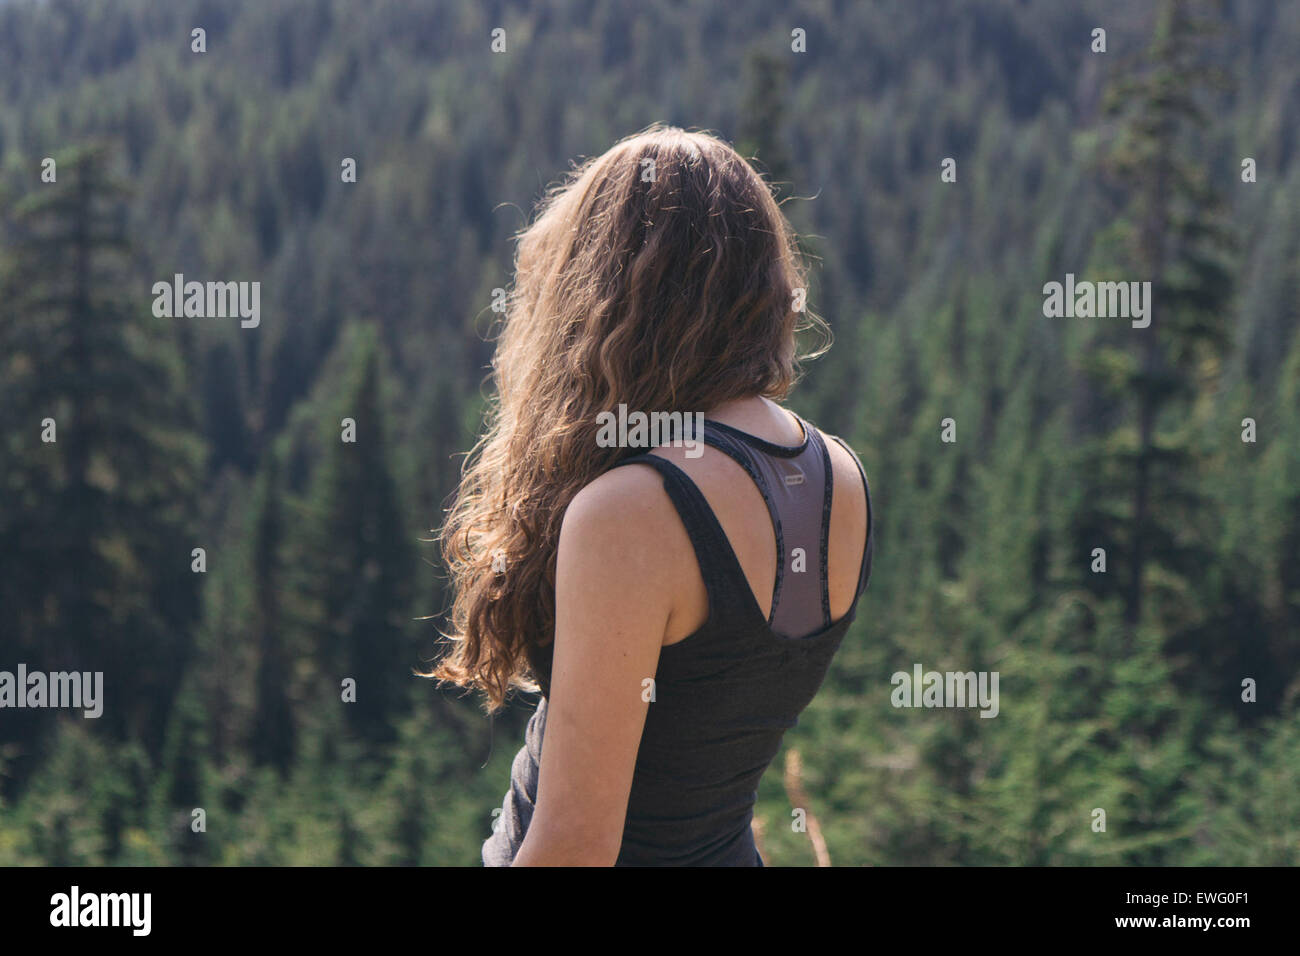 Female with Back Turned Overlooking Forest - Stock Image